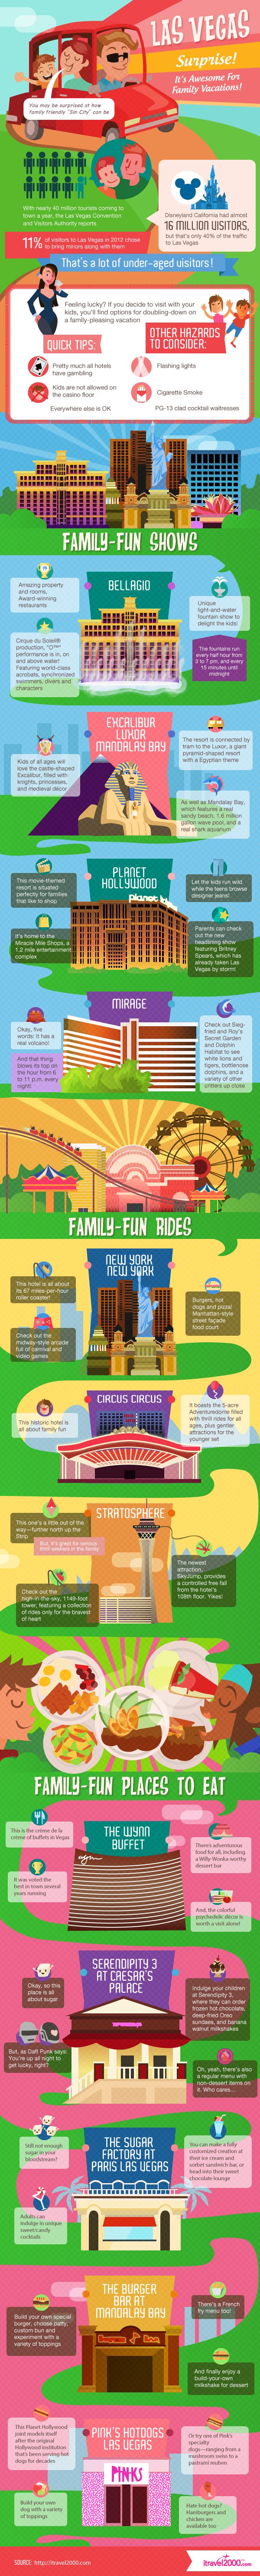 A cool infographic of all the things to do in #Vegas with kids including where to eat, play and stay!